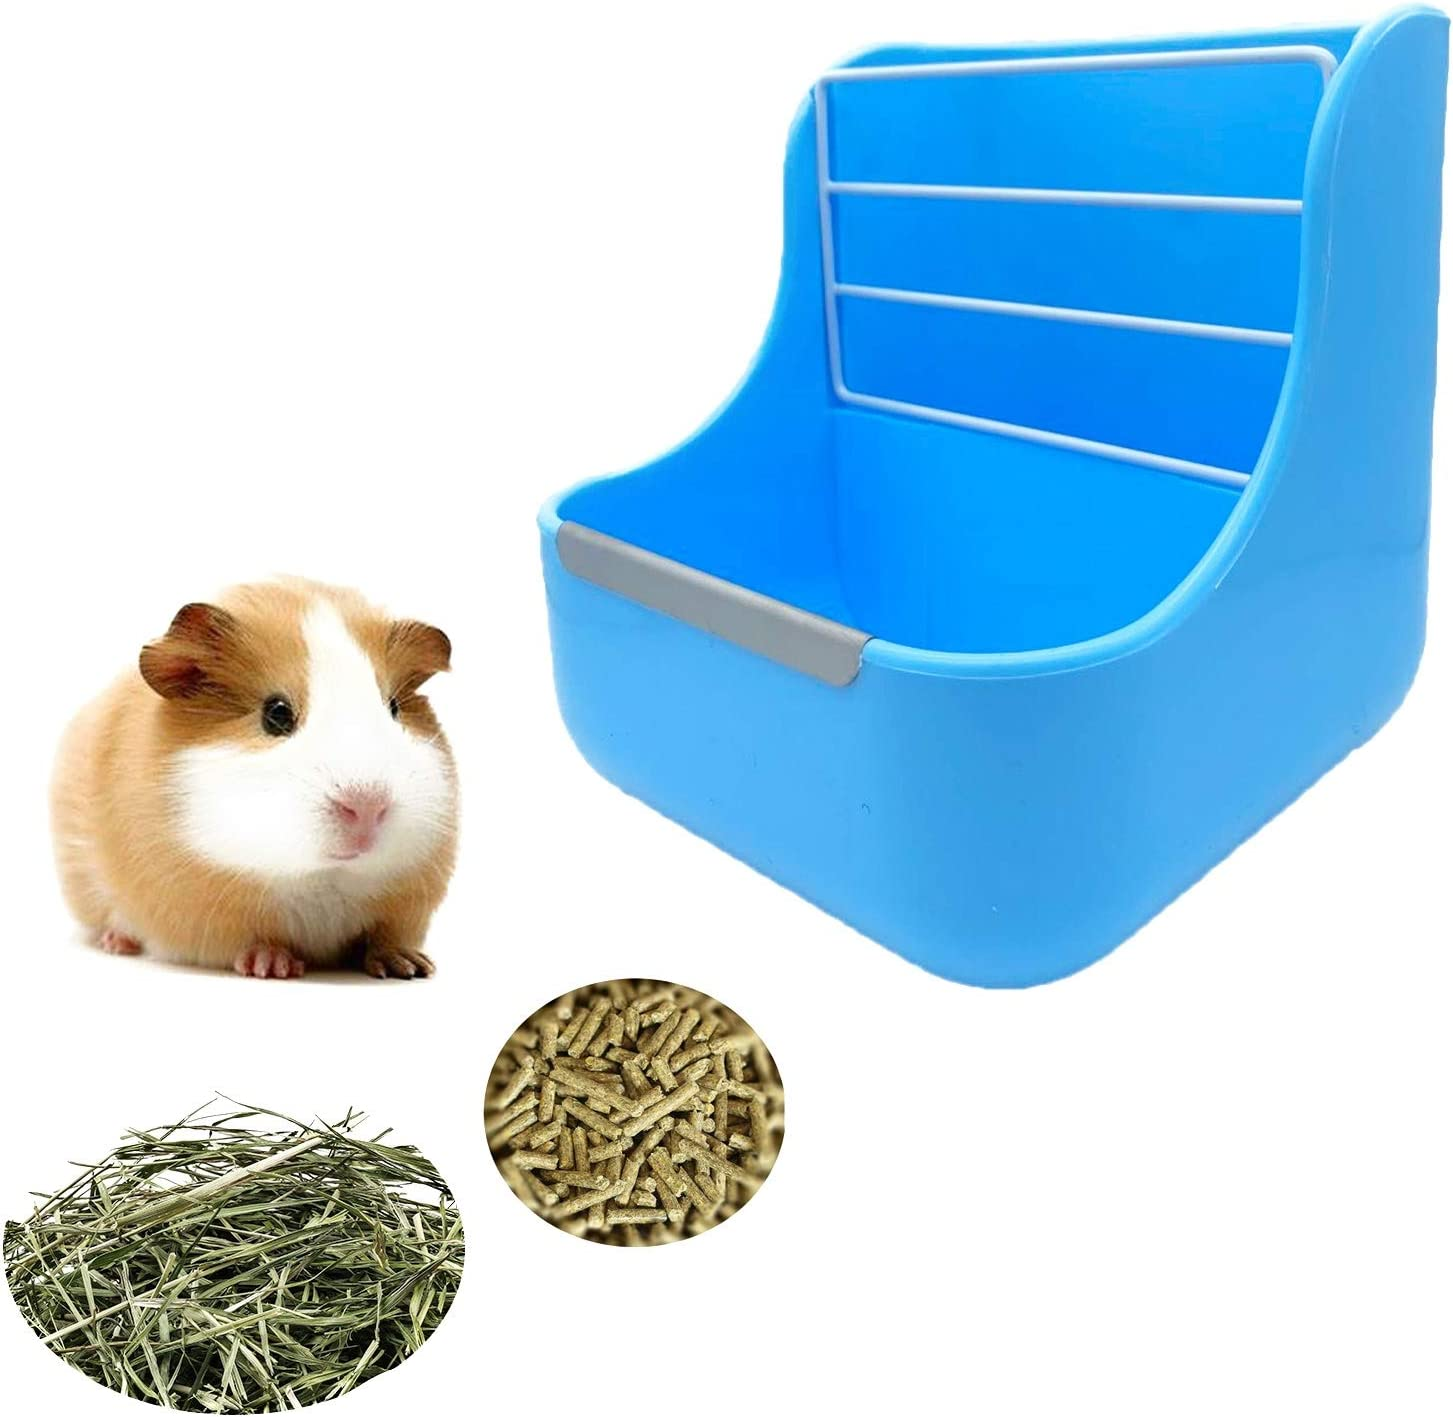 Mcgogo Rabbit Hay Feeders Rack,2 in 1 Feeder Bowls Double for Grass/Food for Small Animal Supplies Rabbit Chinchillas Guinea Pig Hamsters